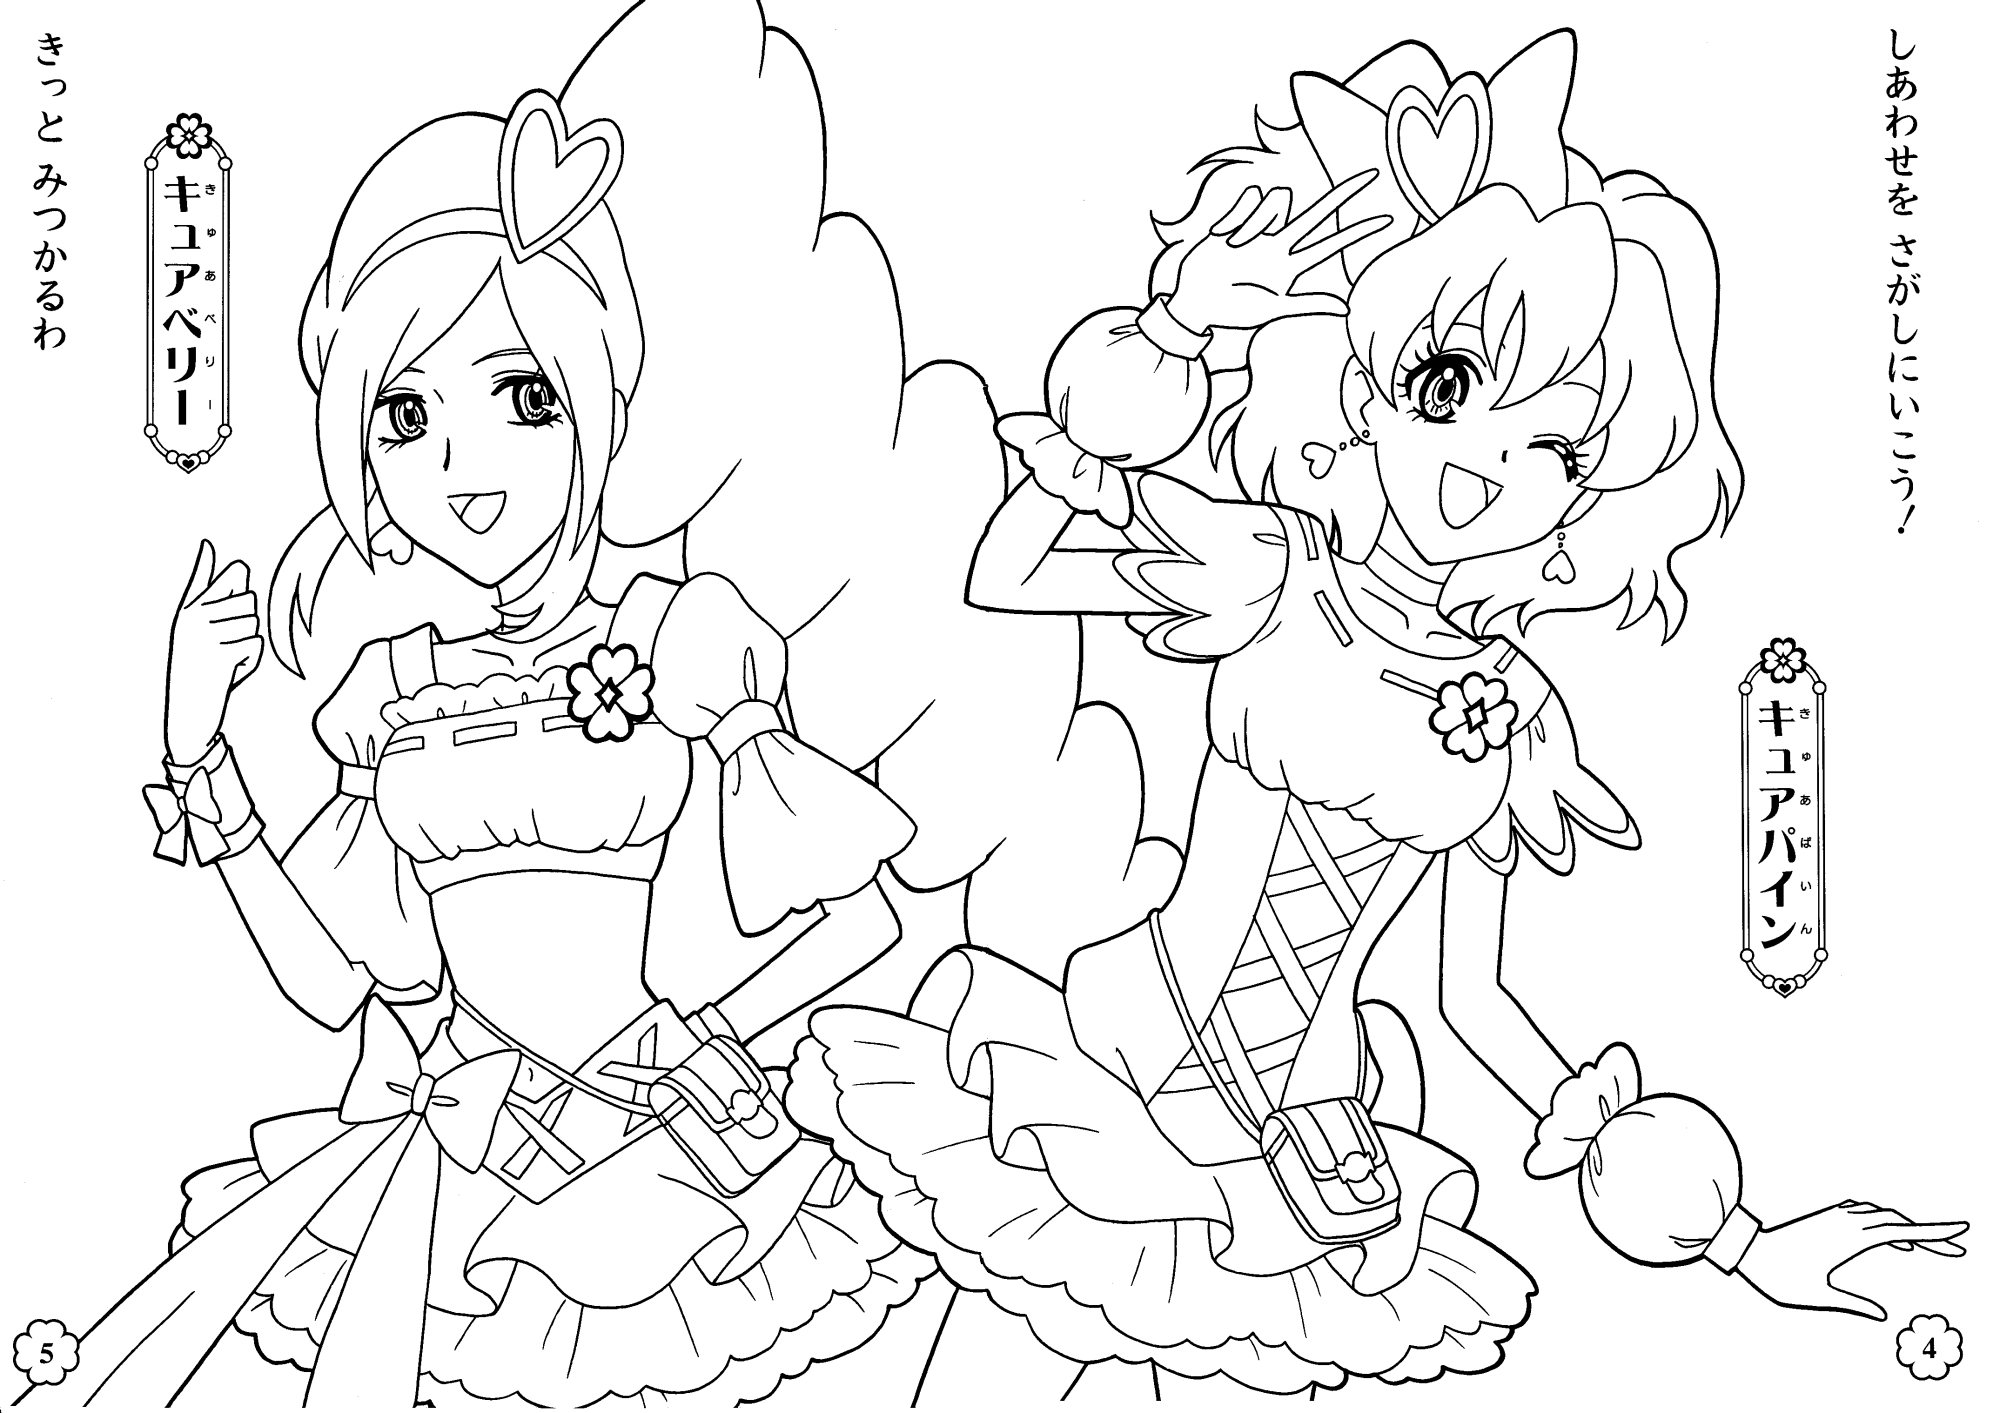 Precure 5 colouring pages page 2 for Yes coloring page